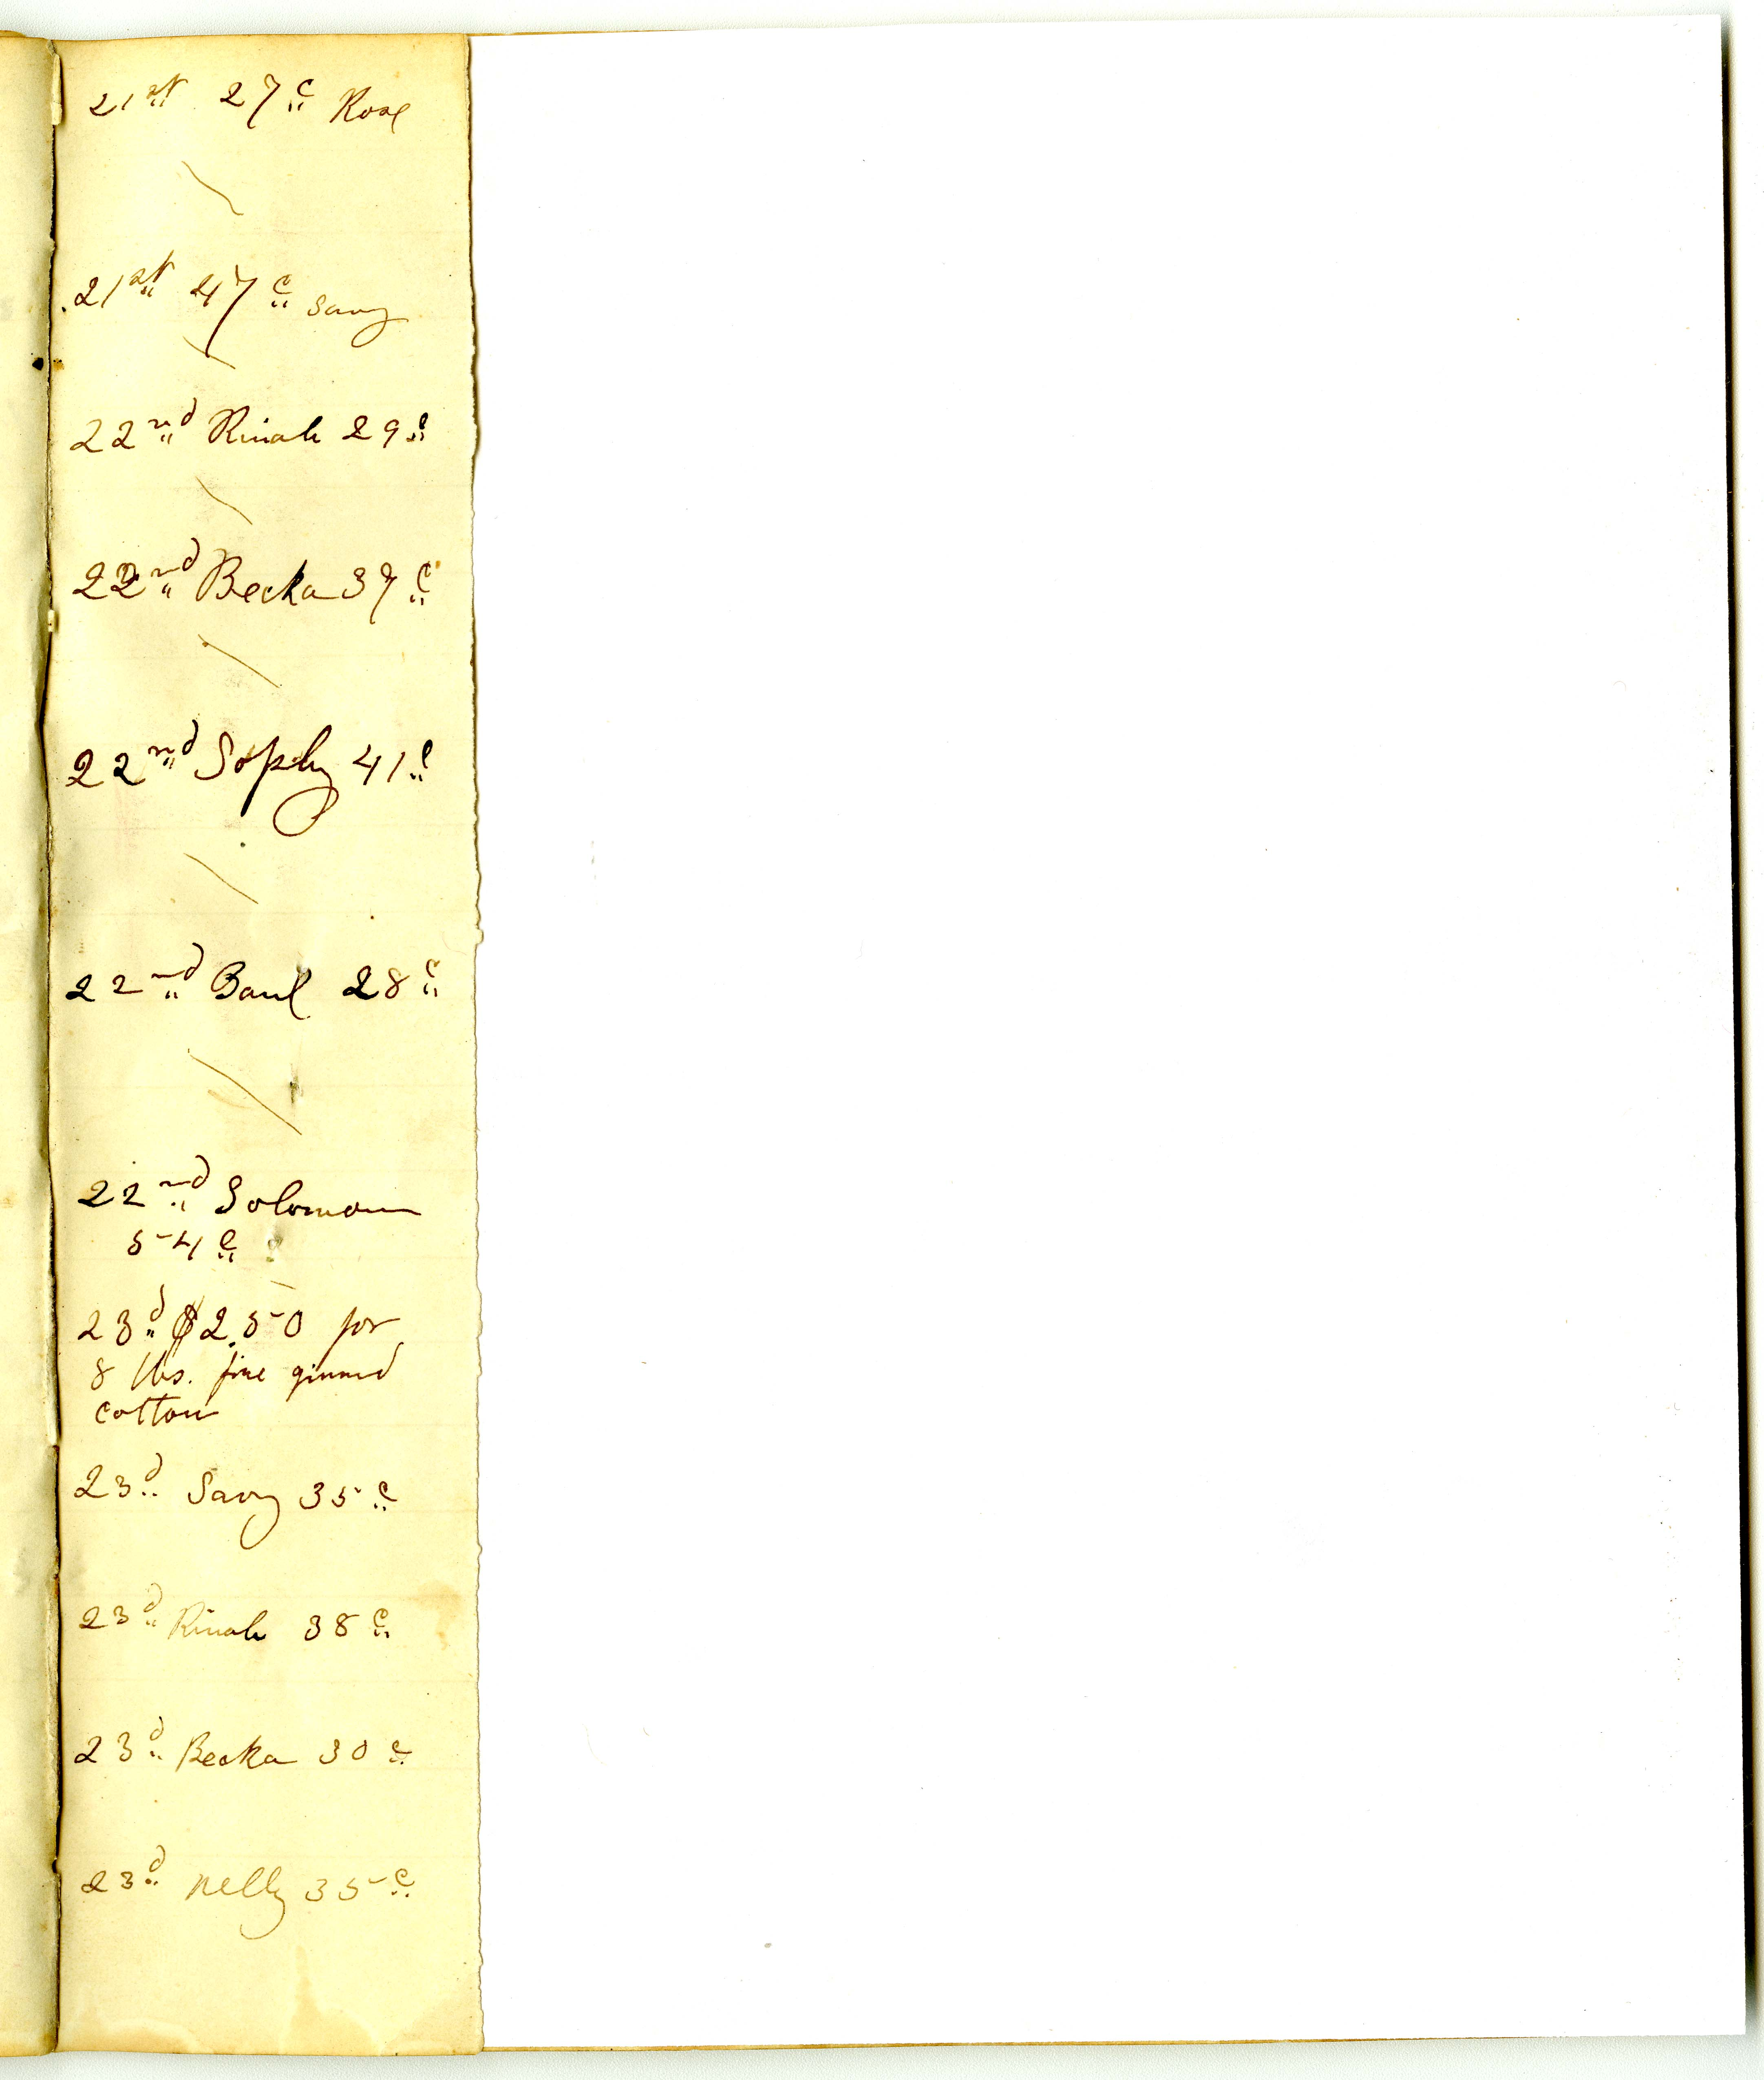 R.L. Johnson Medical Journal, Page 233